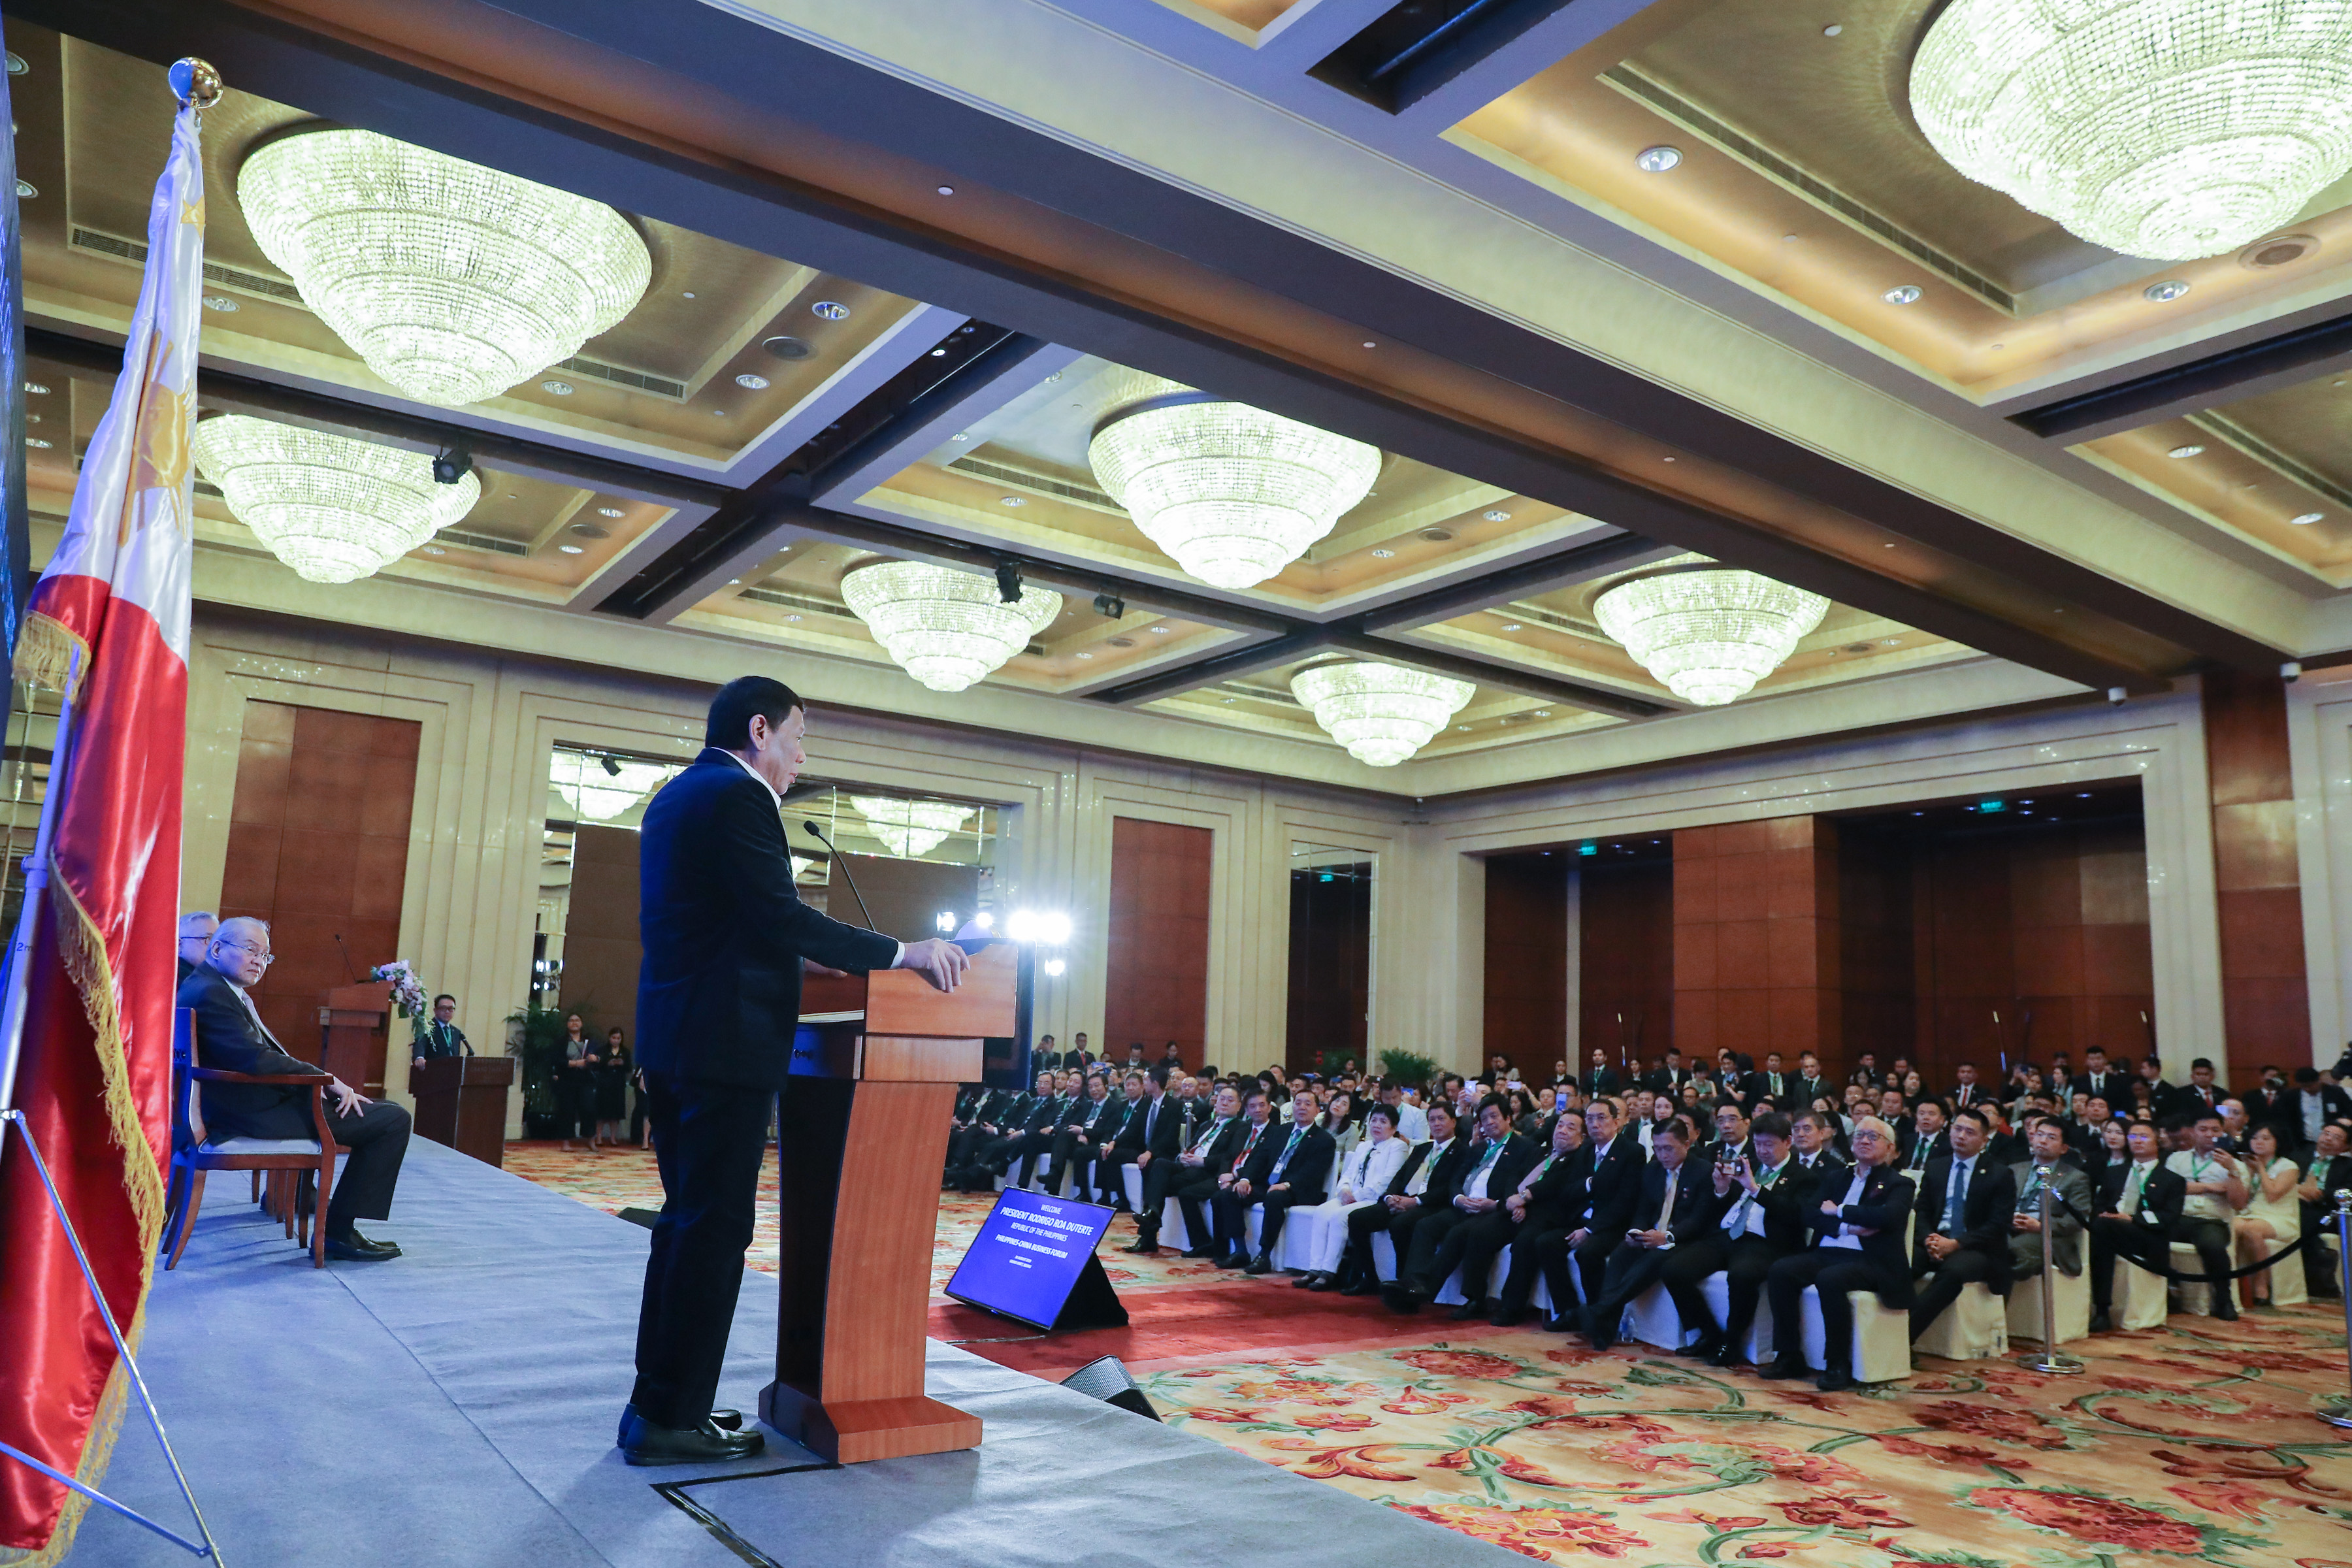 SALES PITCH. President Rodrigo Duterte addresses the Philippines-China Business Forum at the Grand Hyatt Hotel in Beijing on August 30, 2019. Photo by Rey Baniquet/Presidential Photo